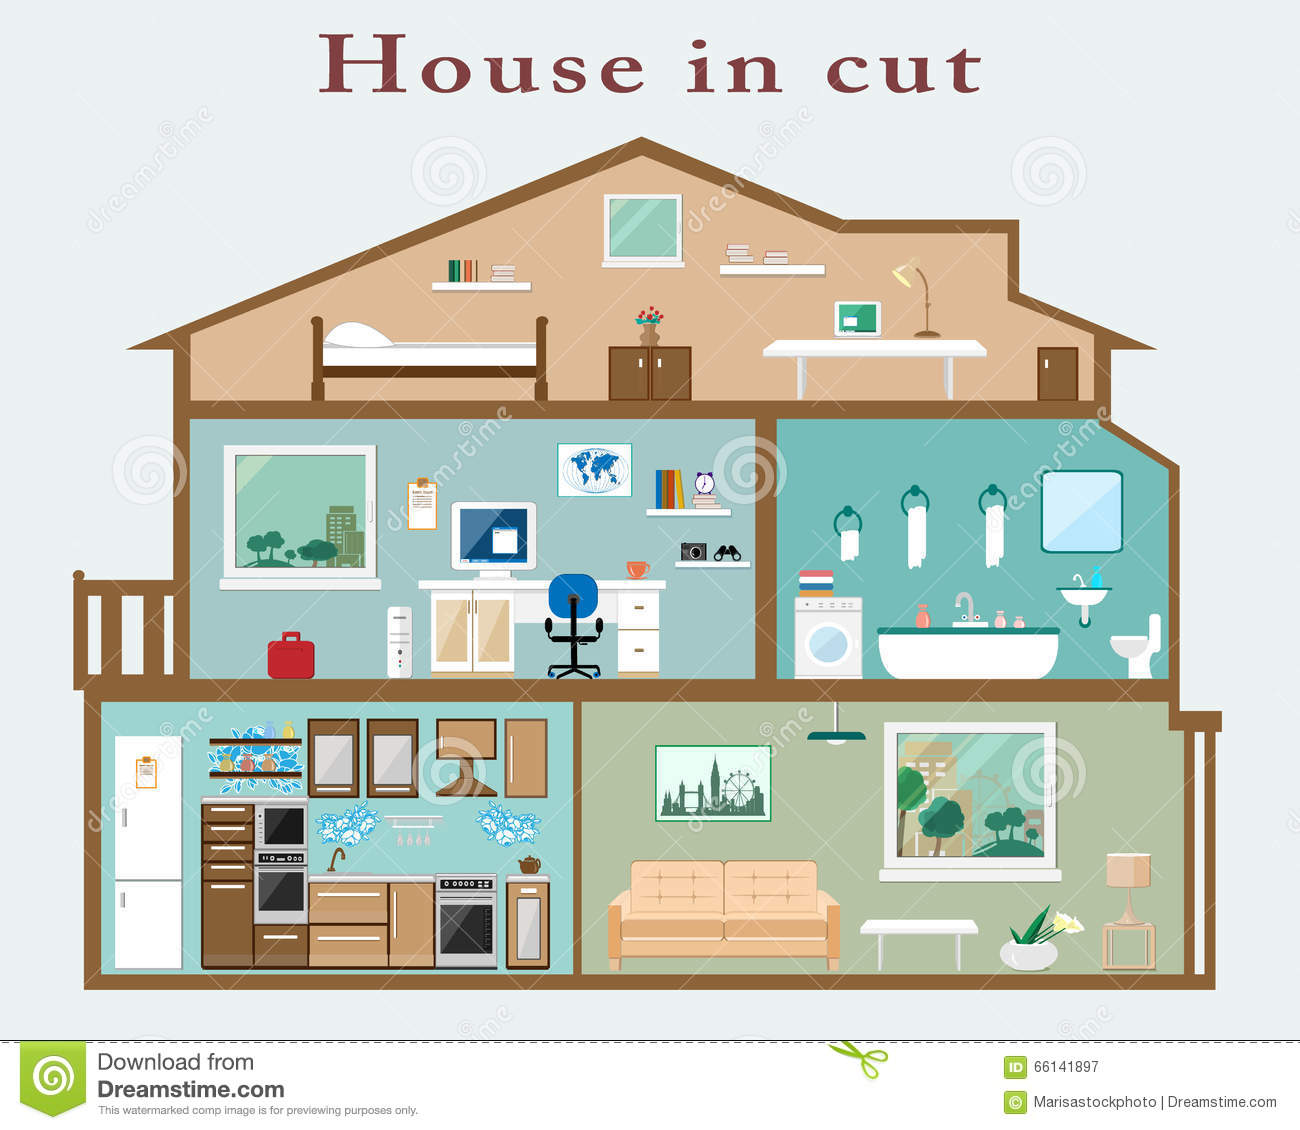 House in cut detailed flat style interior set of rooms with furniture royalty free